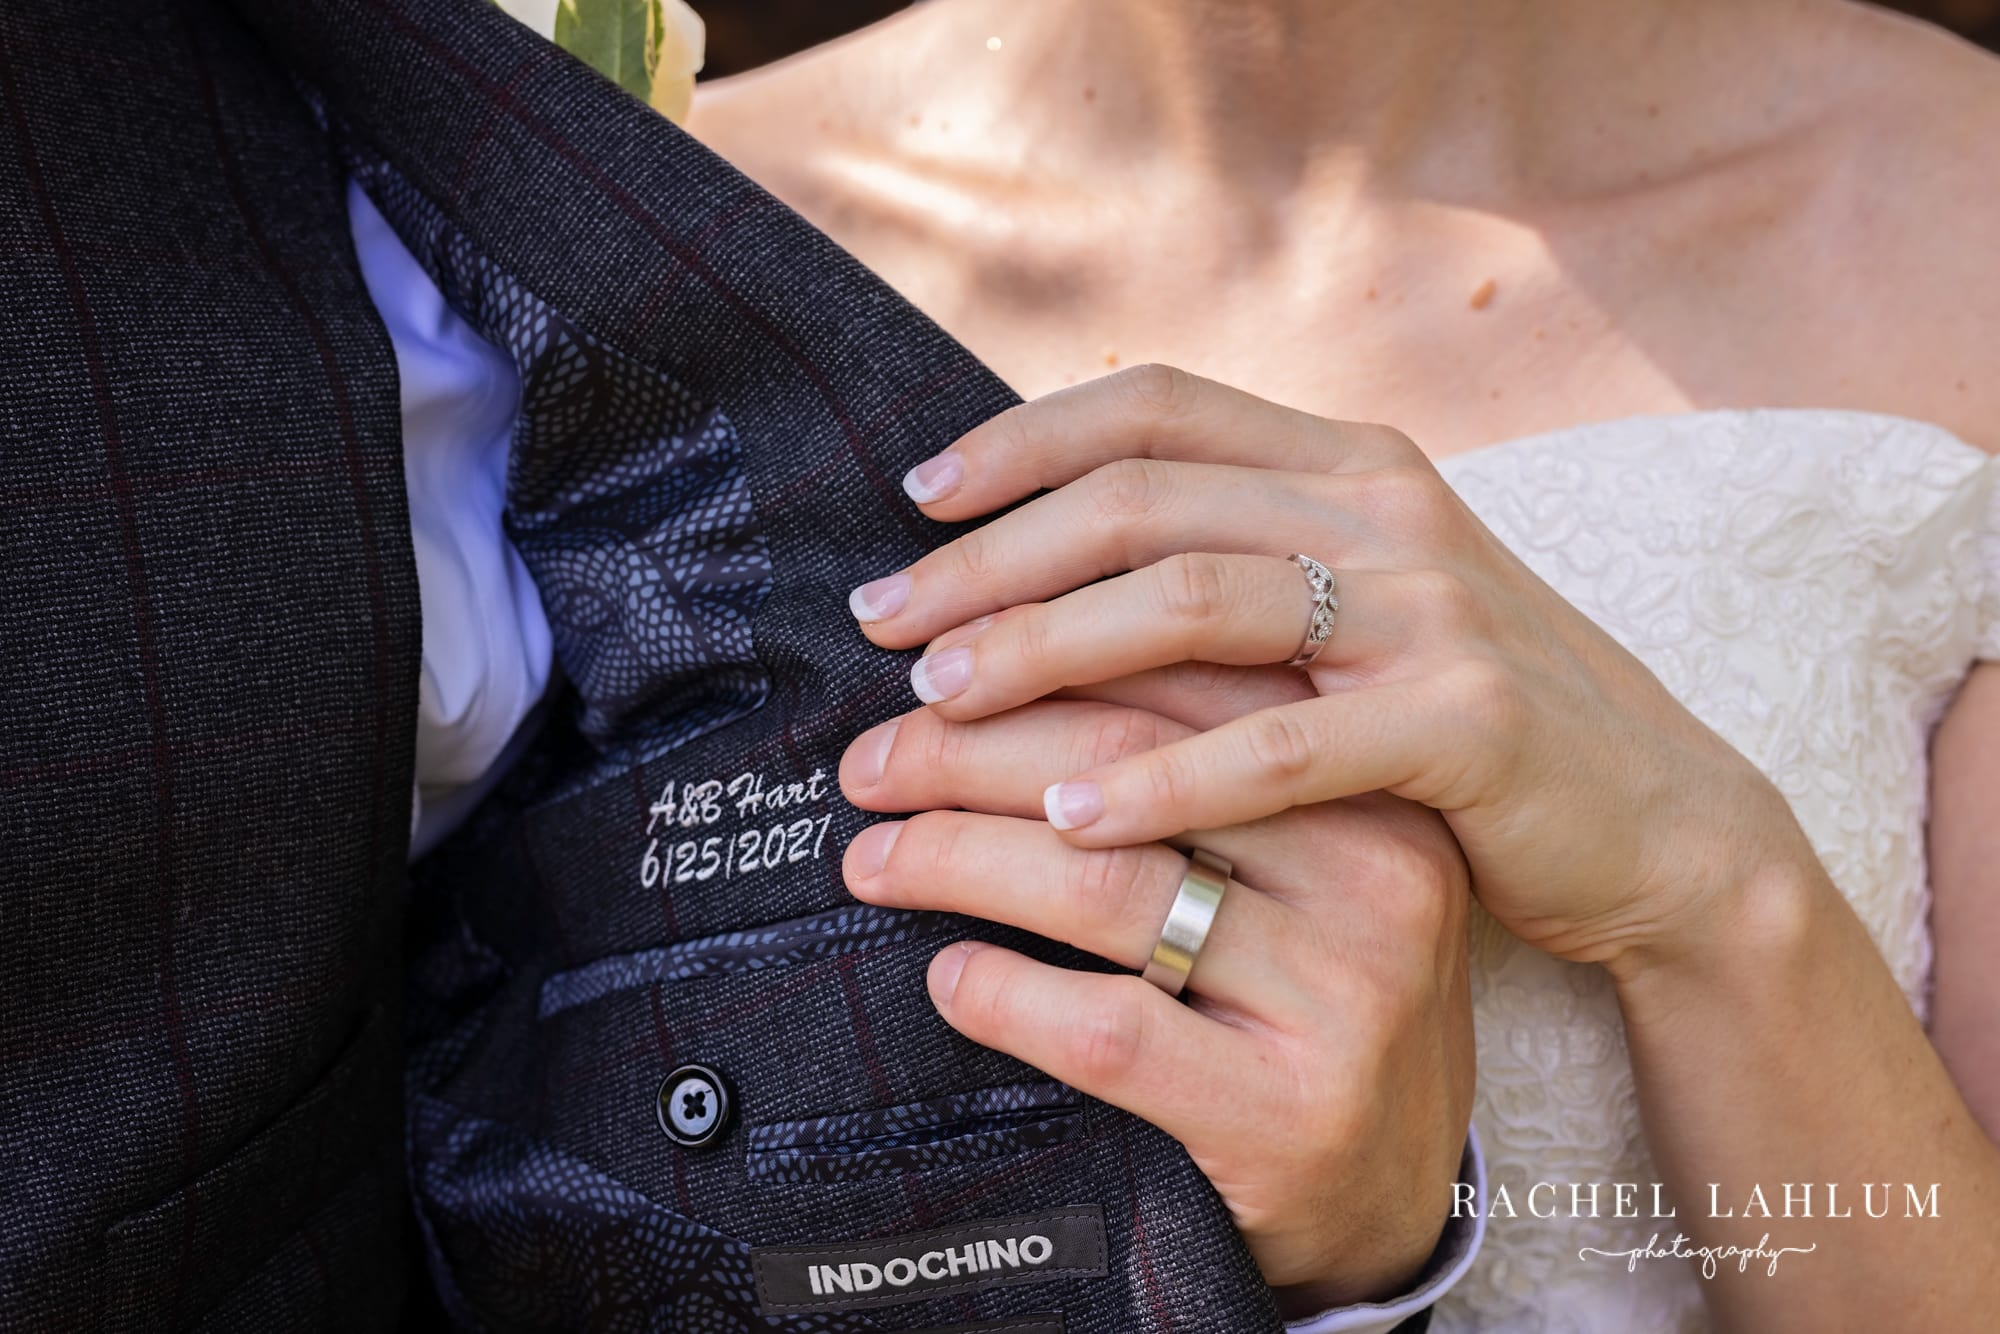 Bride and groom show off wedding bands after St. Paul wedding ceremony.